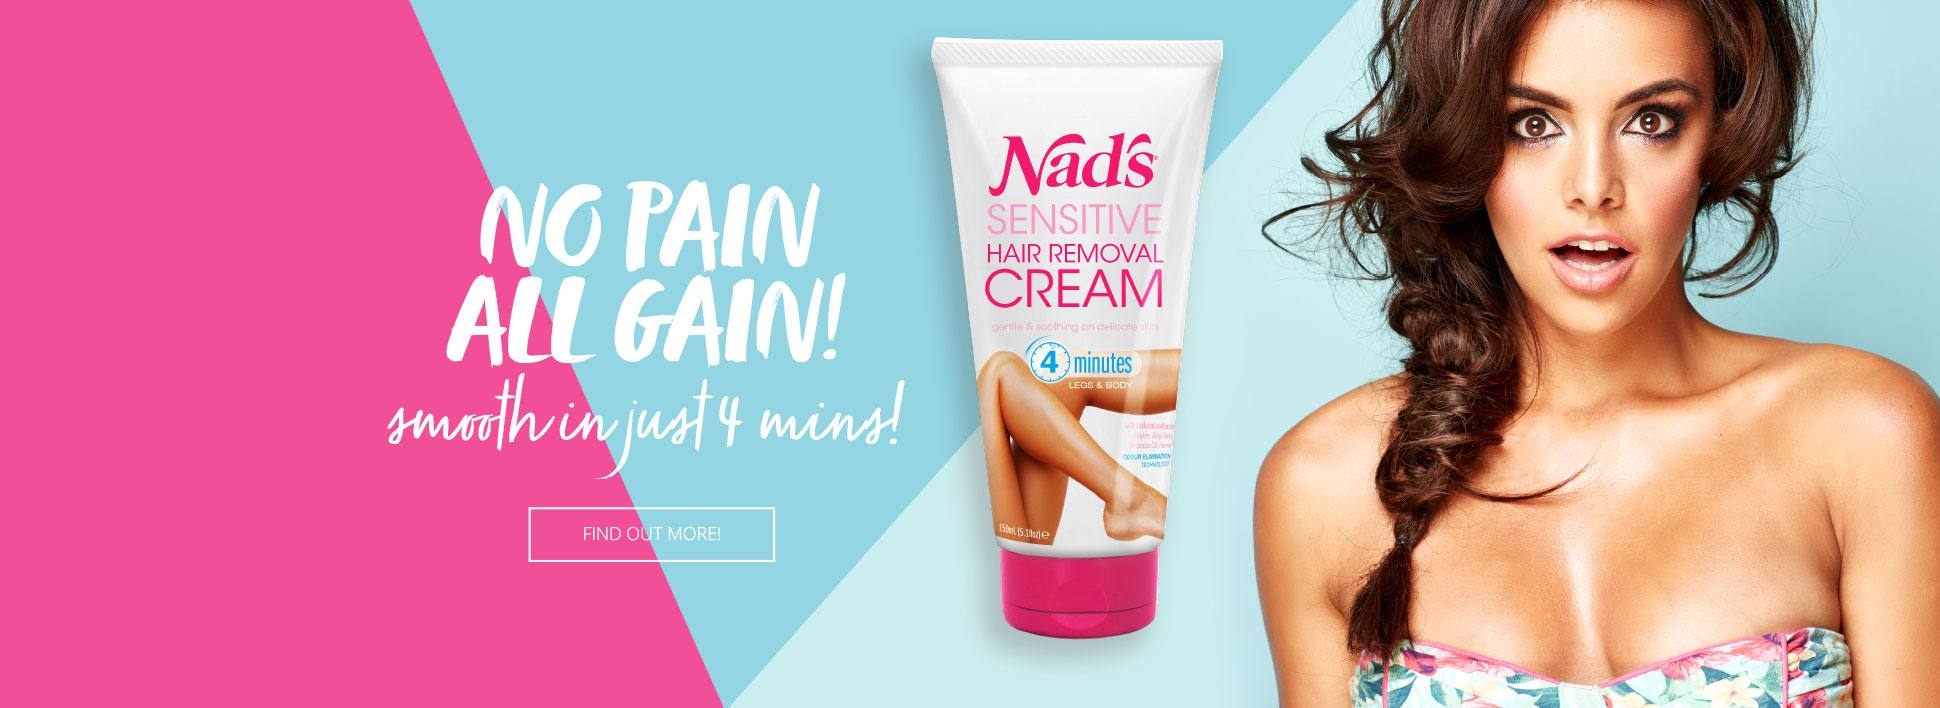 Nad's Sensitive Hair Removal Cream | No Pain All Gain